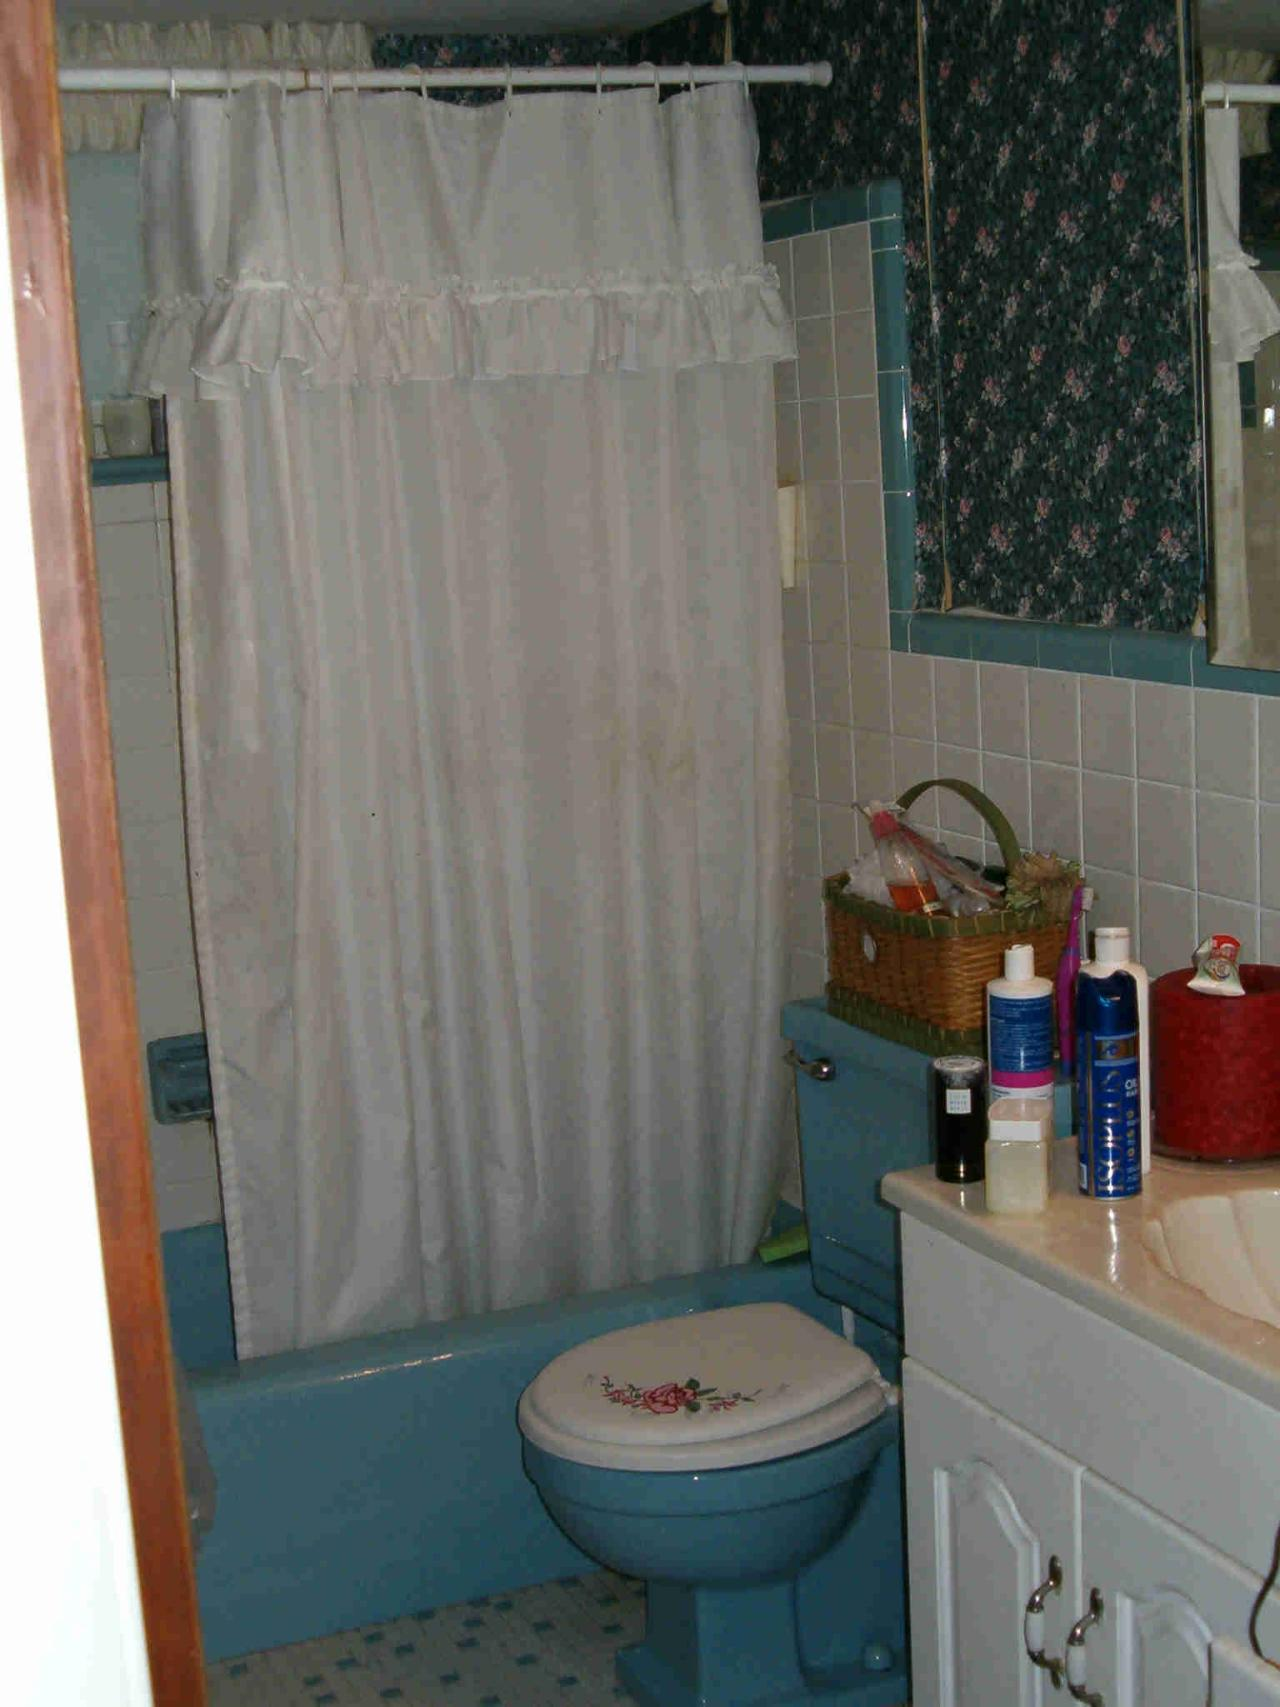 Ugly Bathroom: Blue and Busy